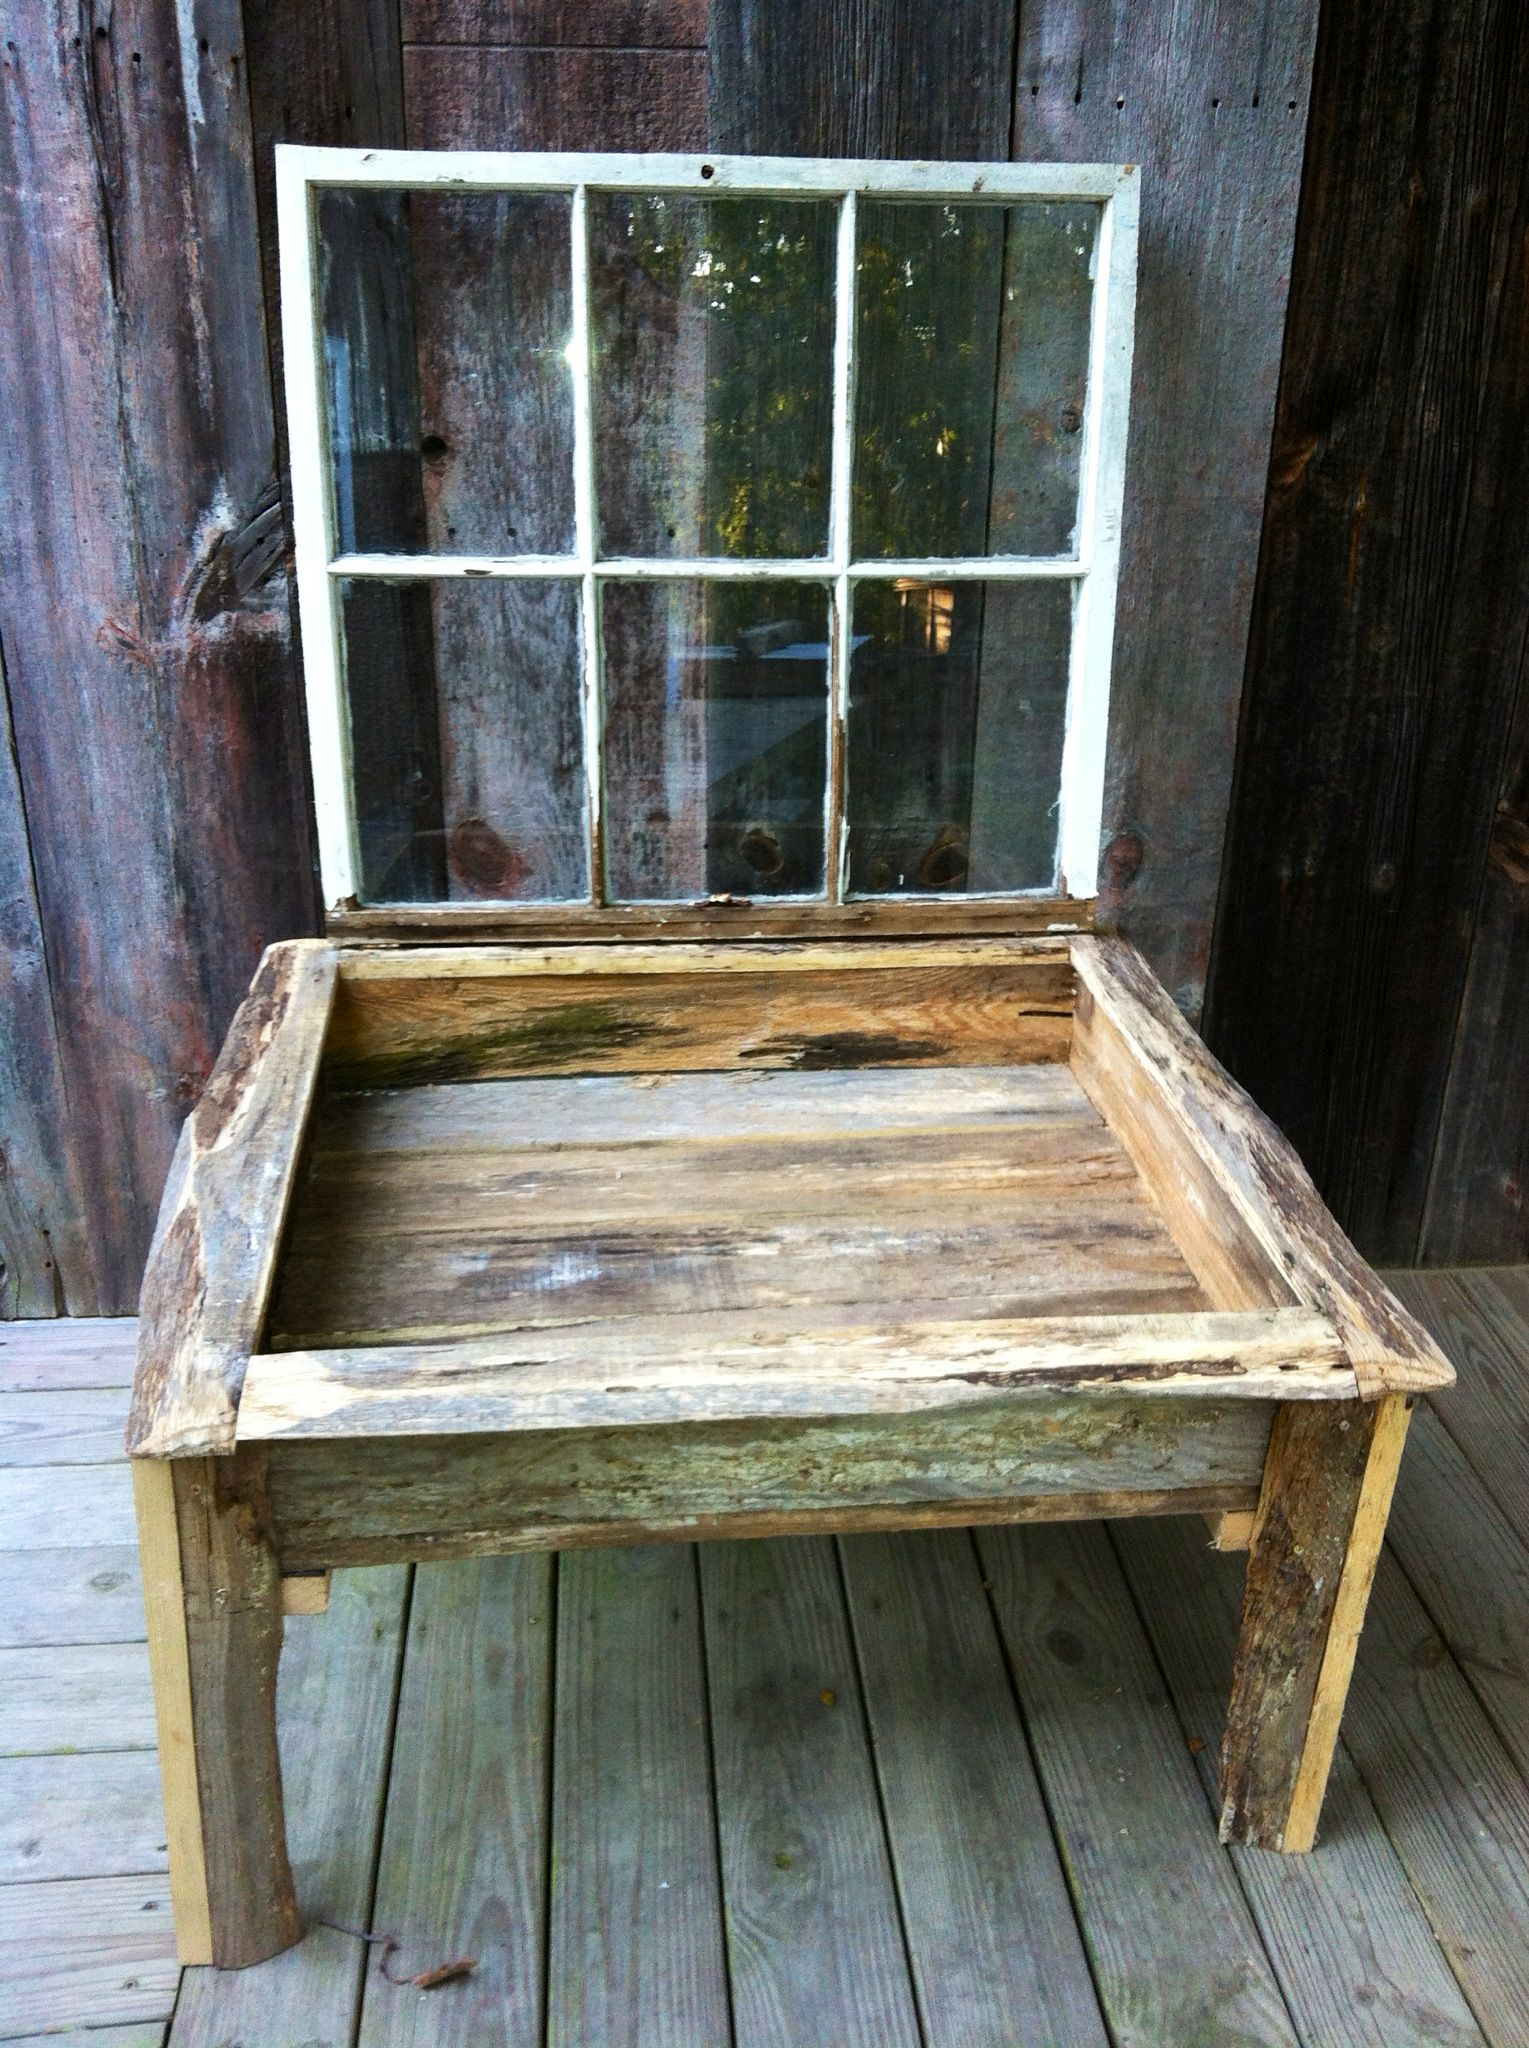 Coffee table with salvage window frame lid I want to make